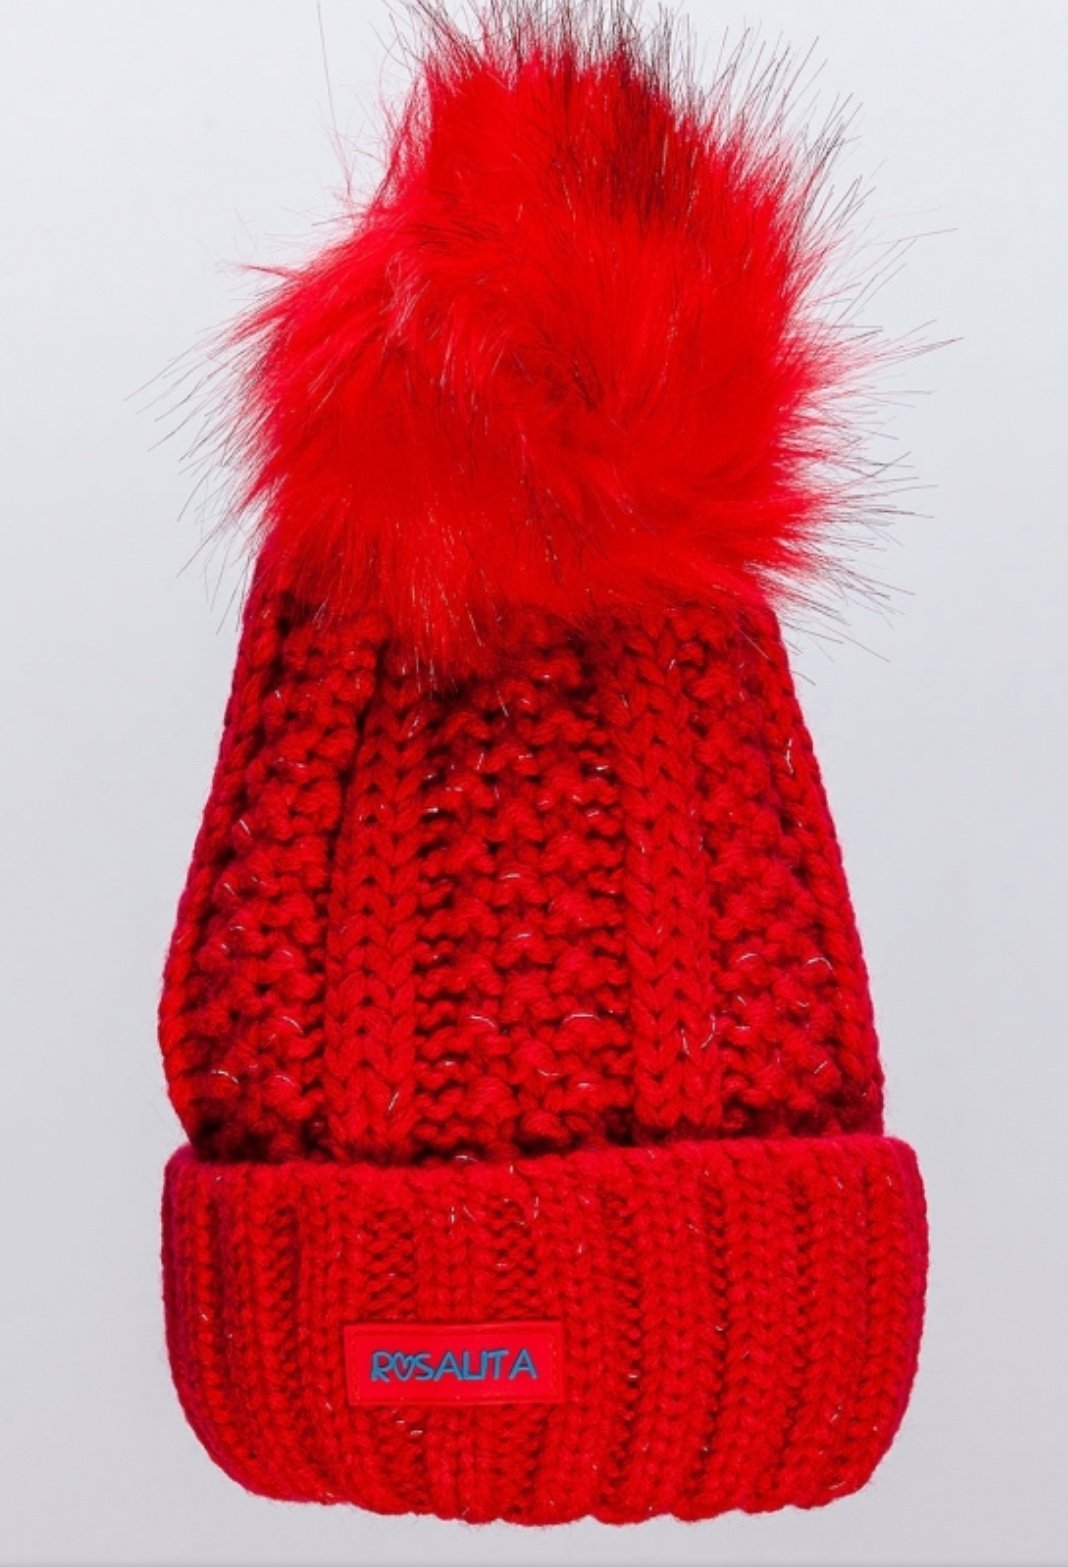 Rosalitas Brienz knitted hat with fixed faux fur pom pom.